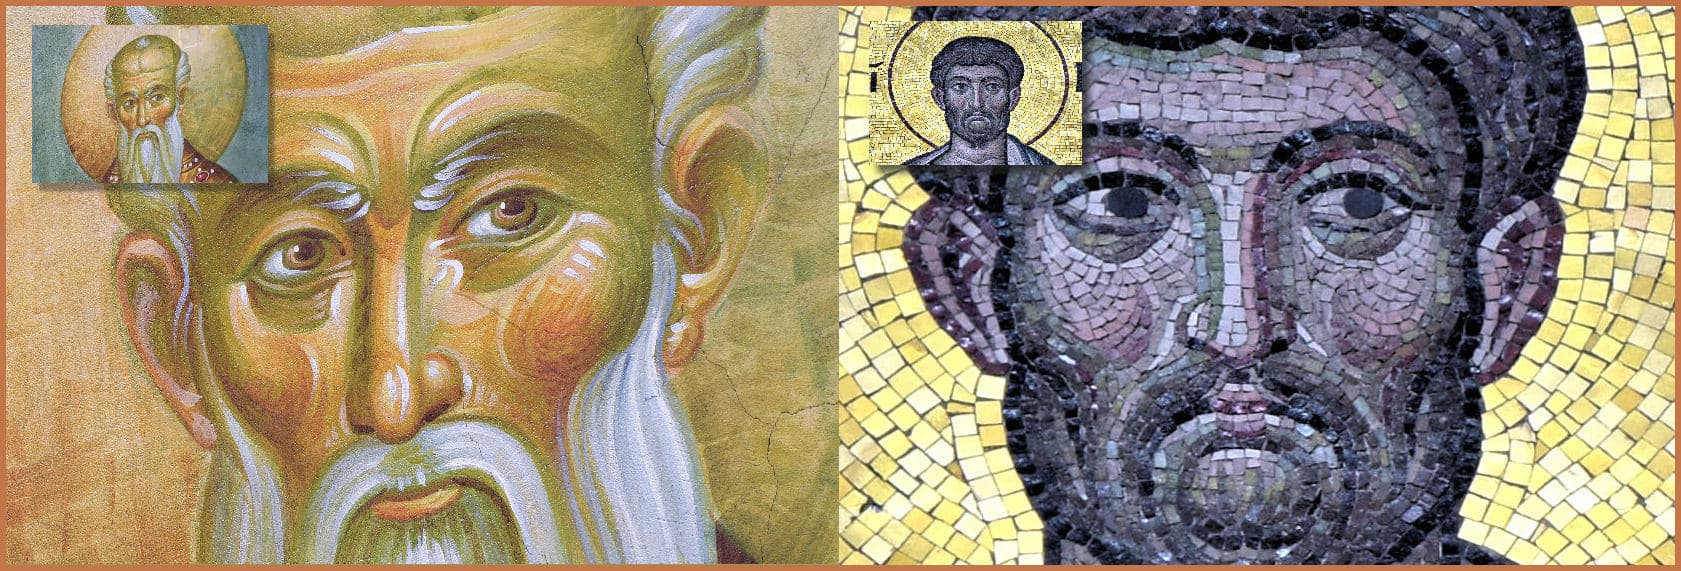 Details - Painting and Mosaic